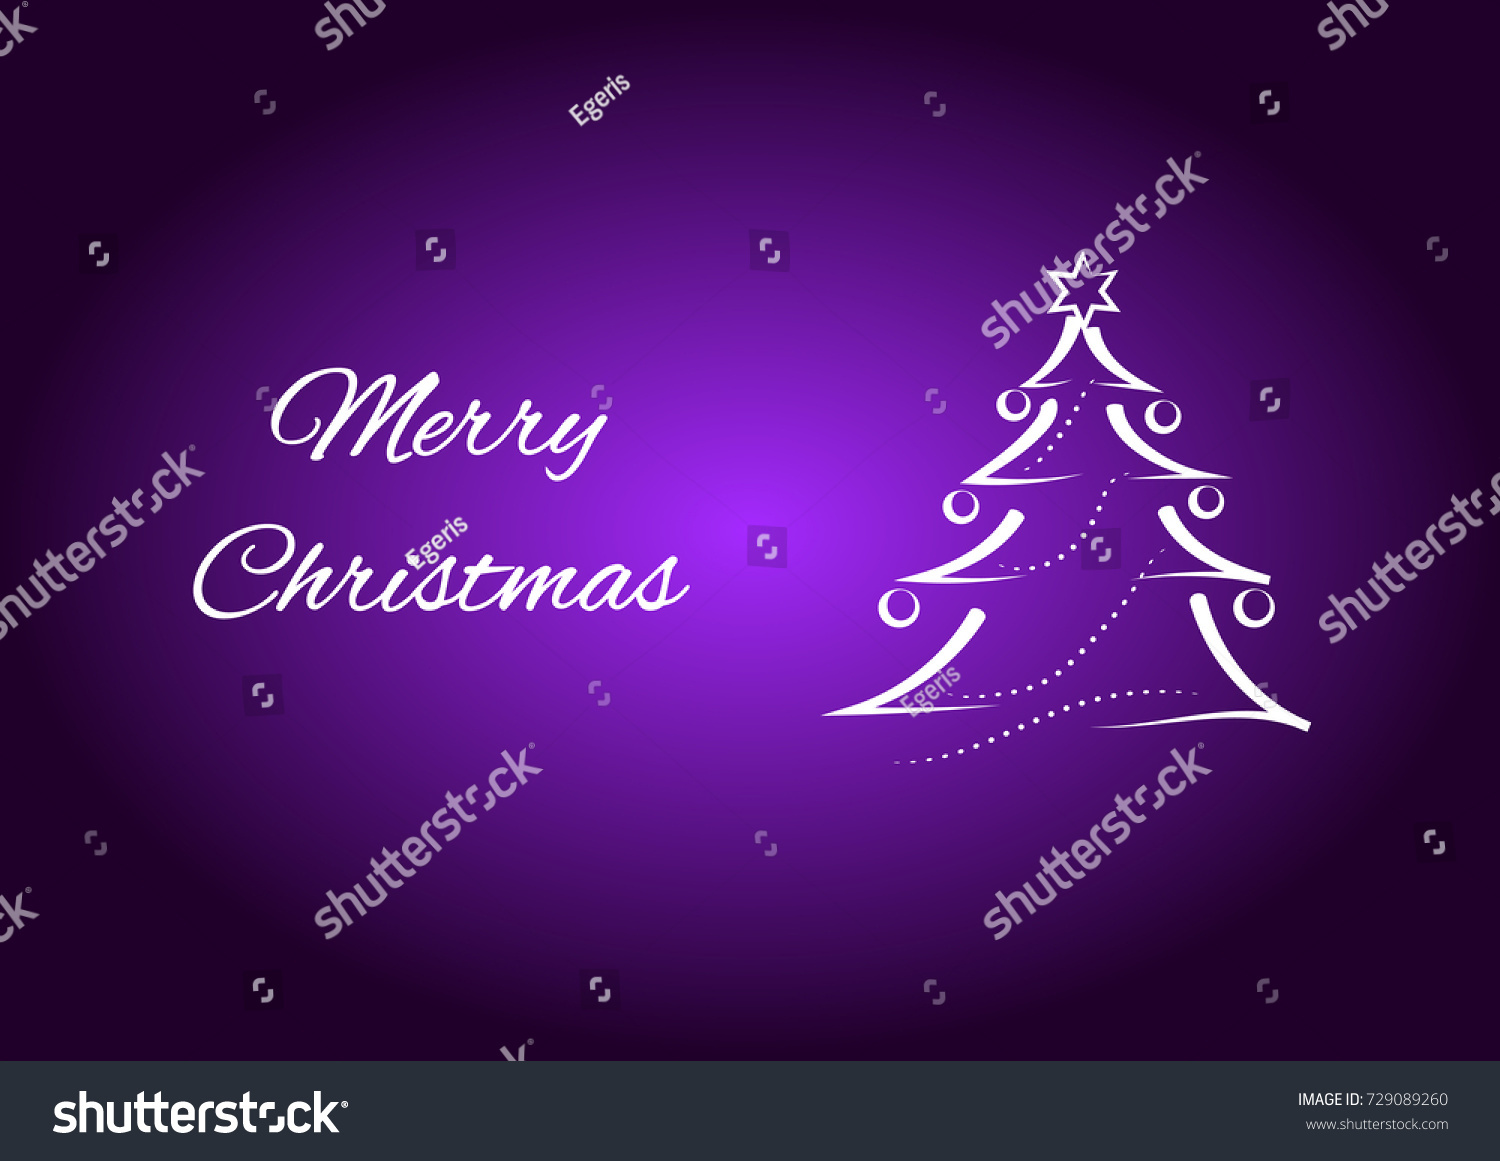 Merry Christmas Card Wishes Christmas Tree Stock Vector Royalty